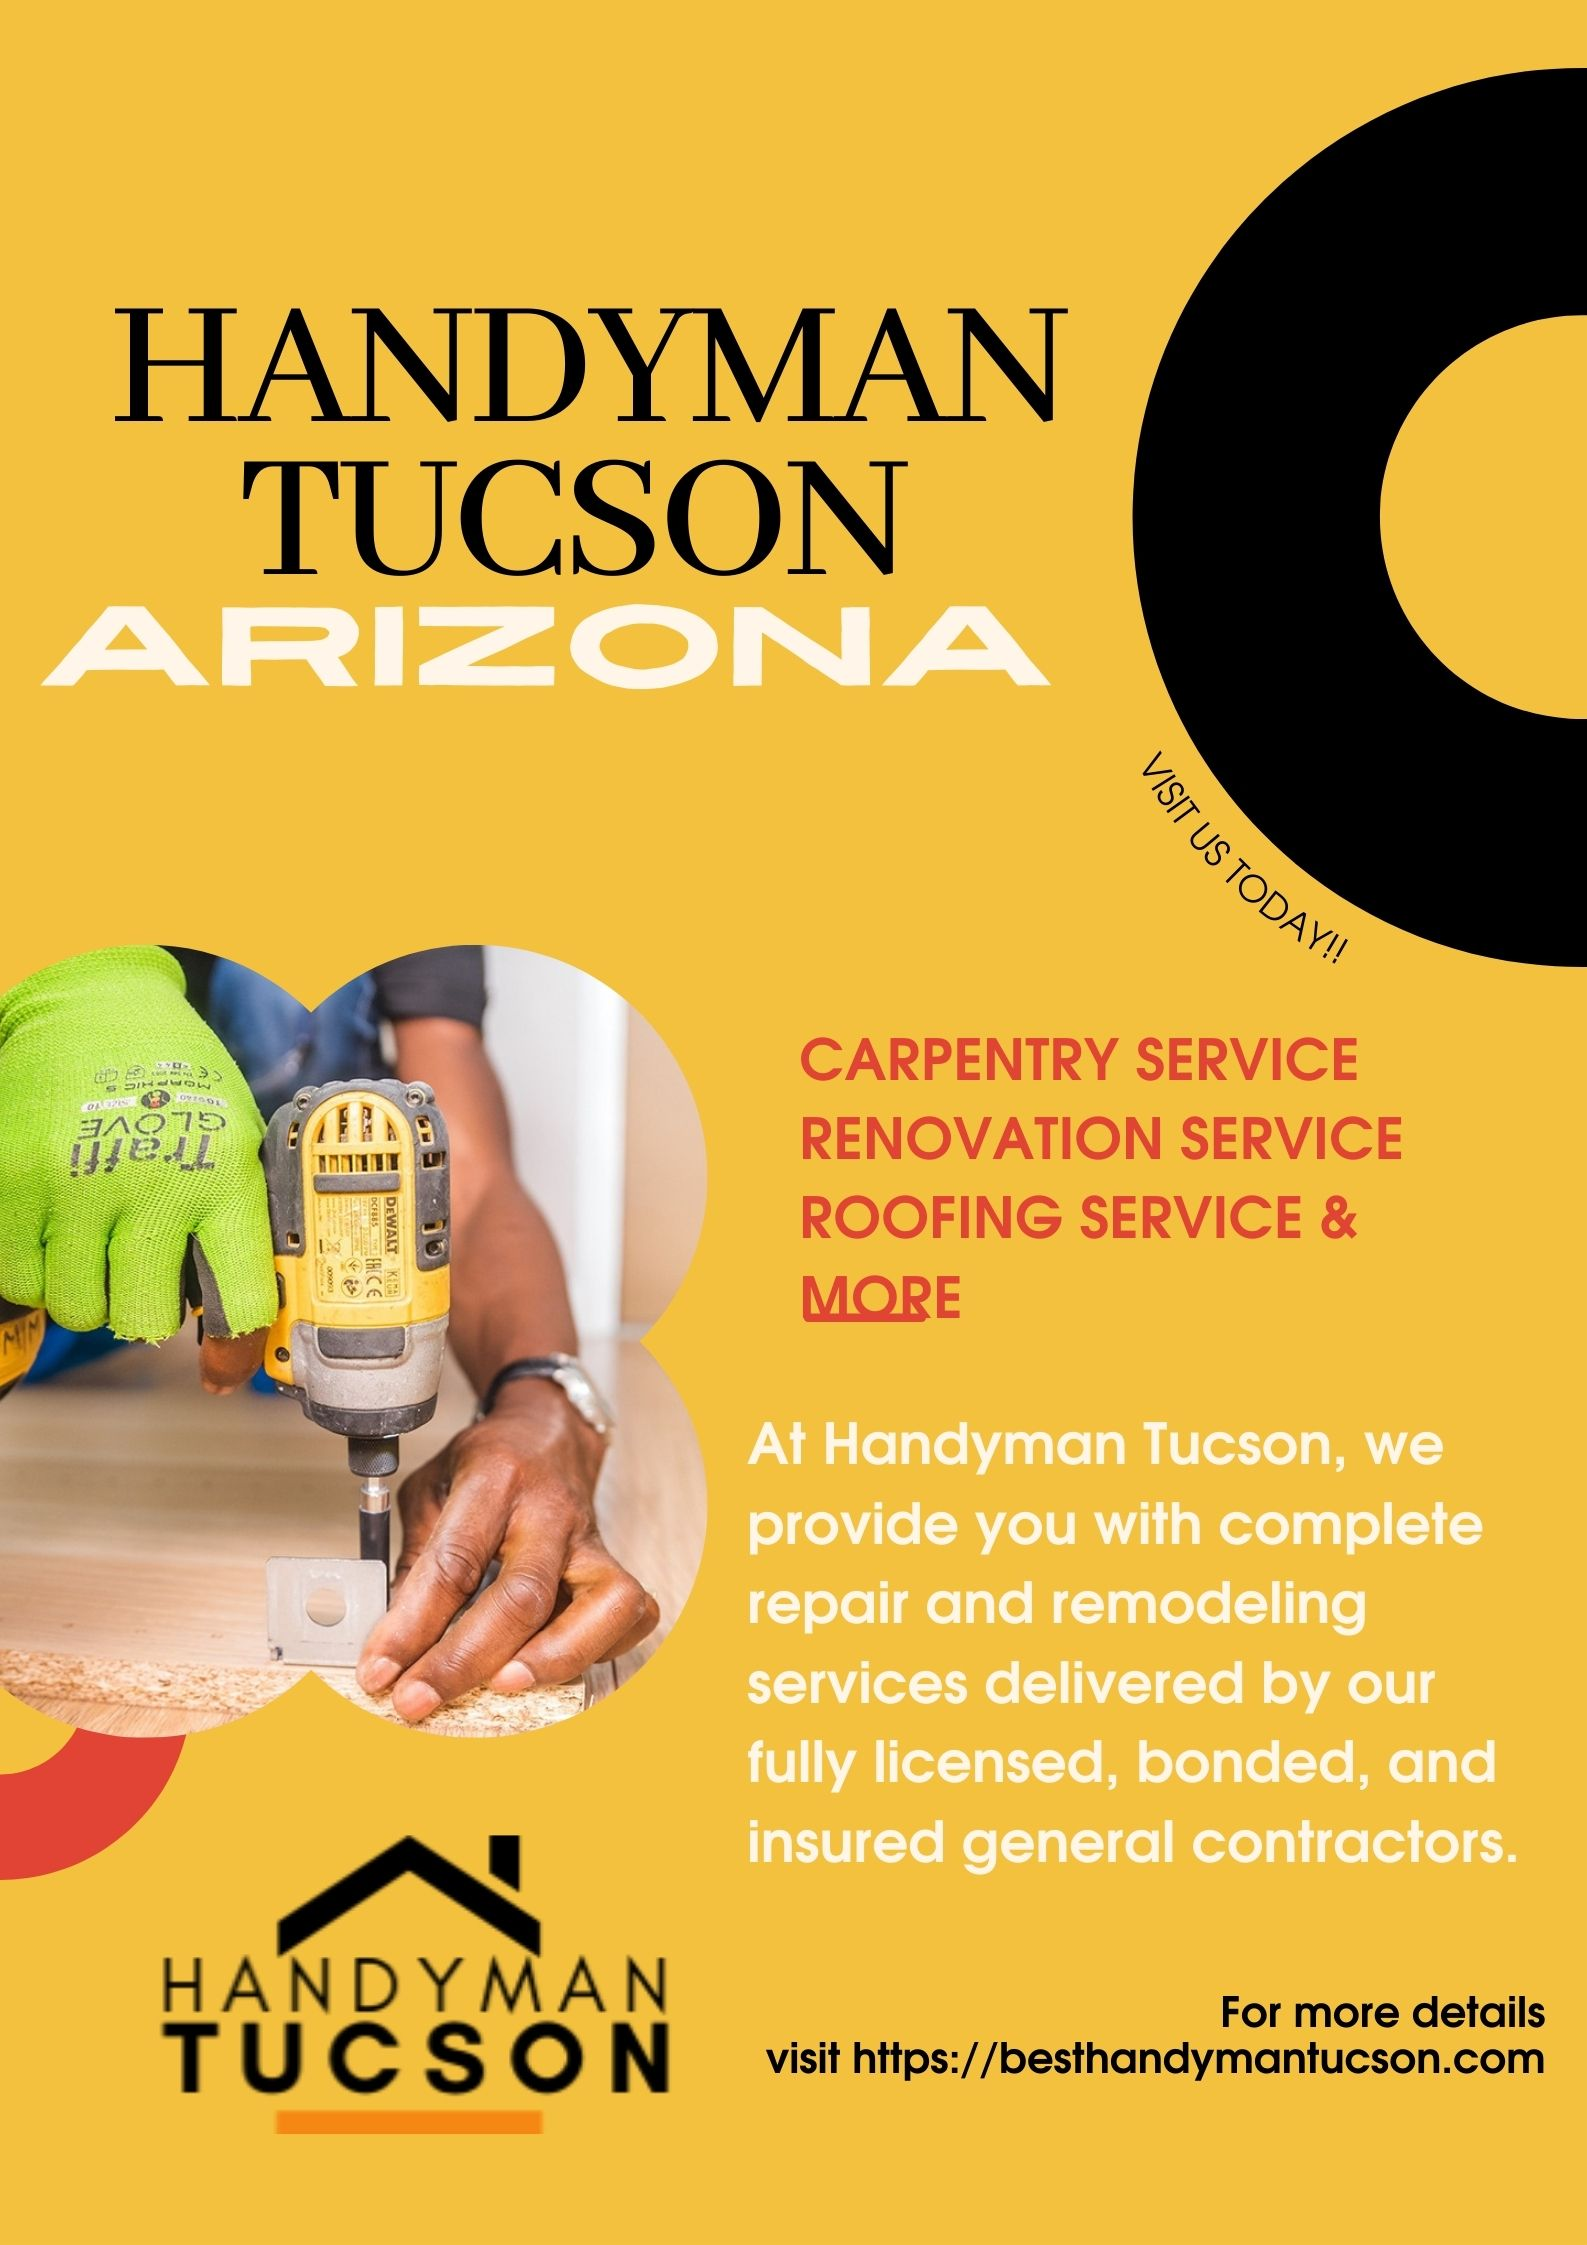 At Handyman Tucson Arizona, we provide you with complete repair and remodeling services delivered by our fully licensed, bonded, and insured general contractors. We also deal with professionals from interior and exterior improvement and repair needs of your office, home, or business property. Our dedicated experts focus on giving you world-class services.